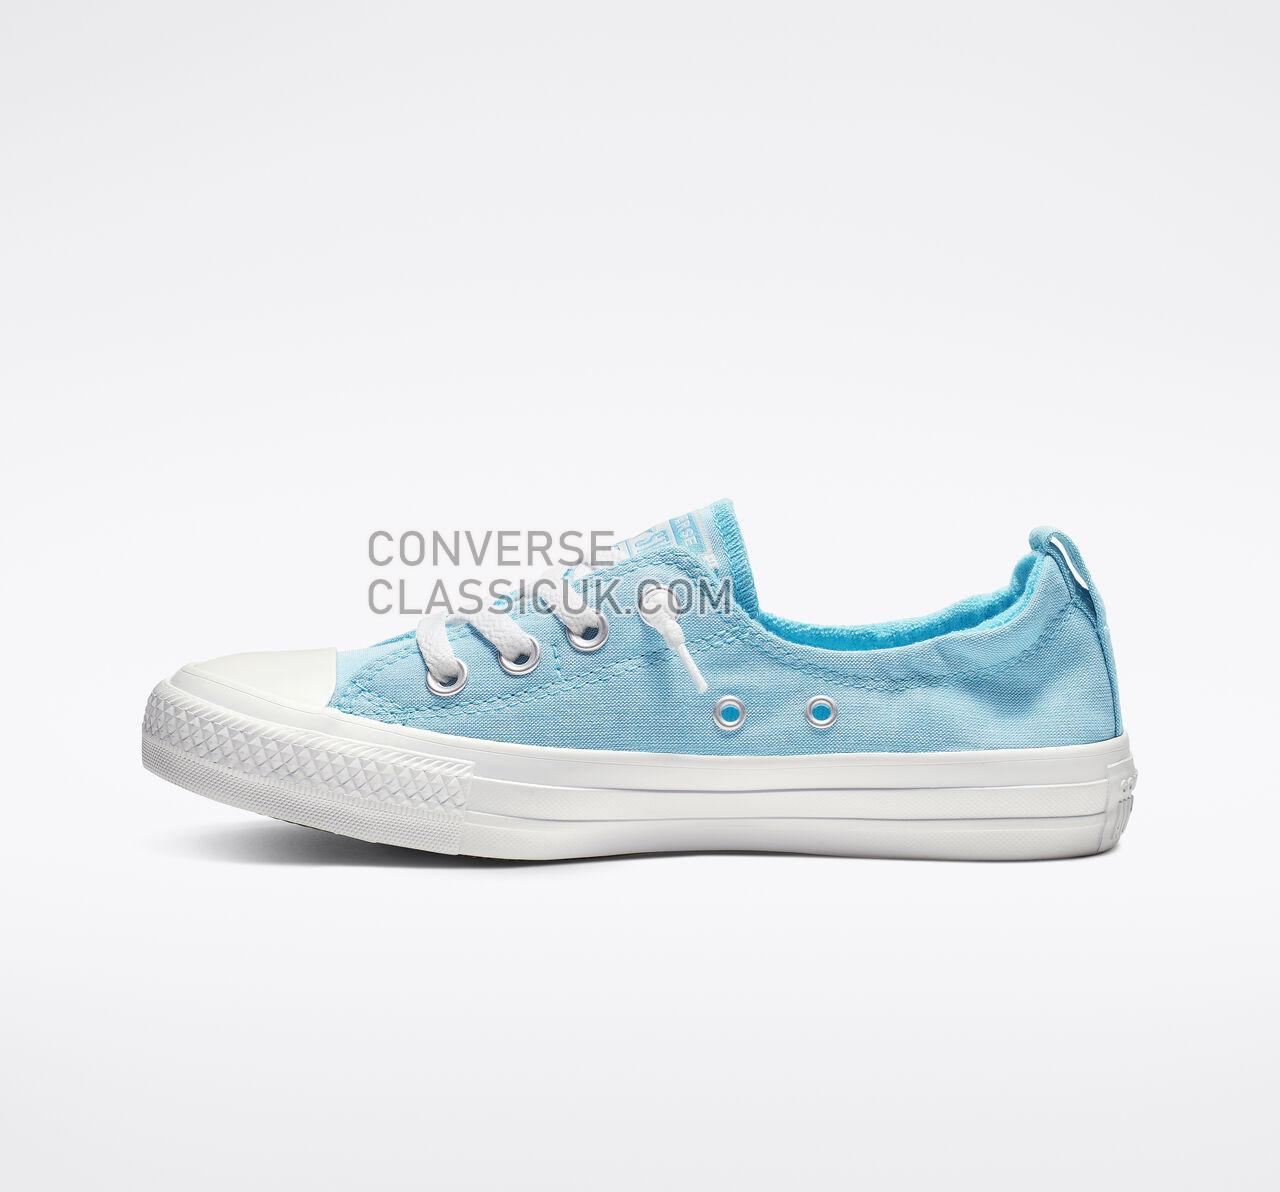 Converse Chuck Taylor All Star Shoreline Slip Womens 564338F Gnarly Blue/White/White Shoes